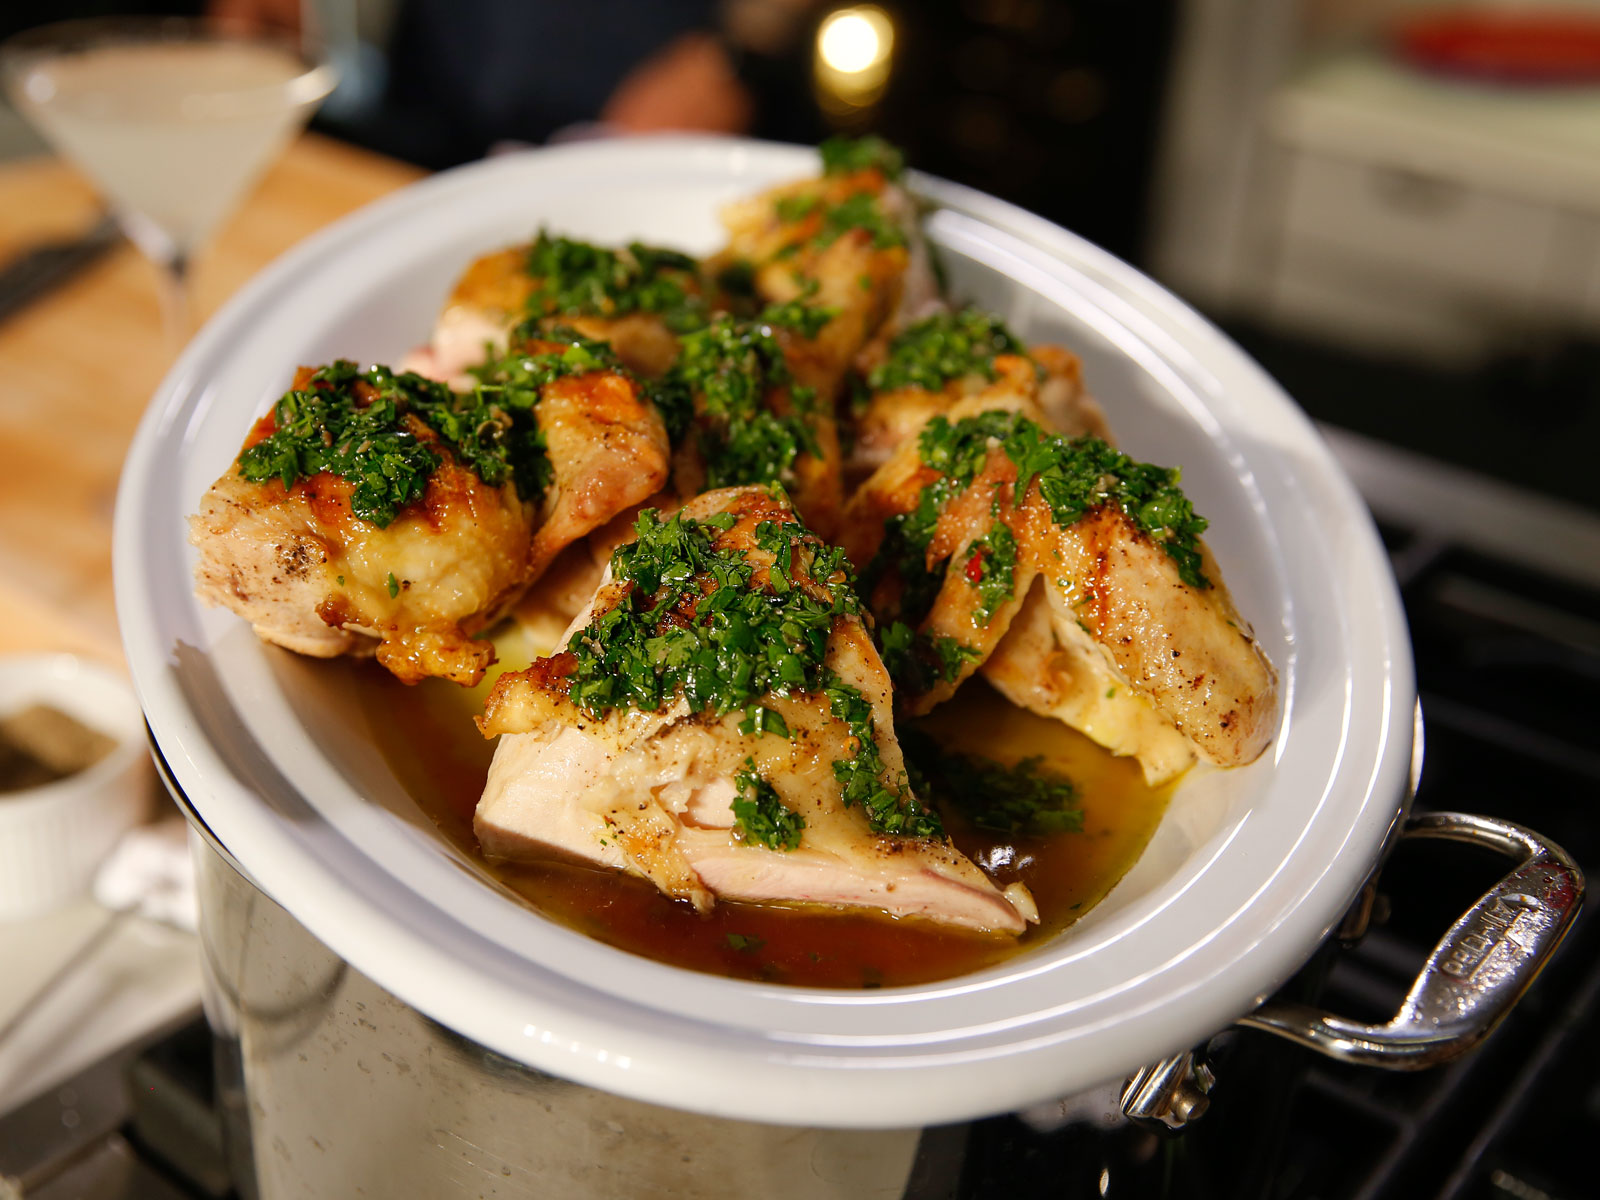 Jonathan Waxman's Definitive Guide to Roast Chicken